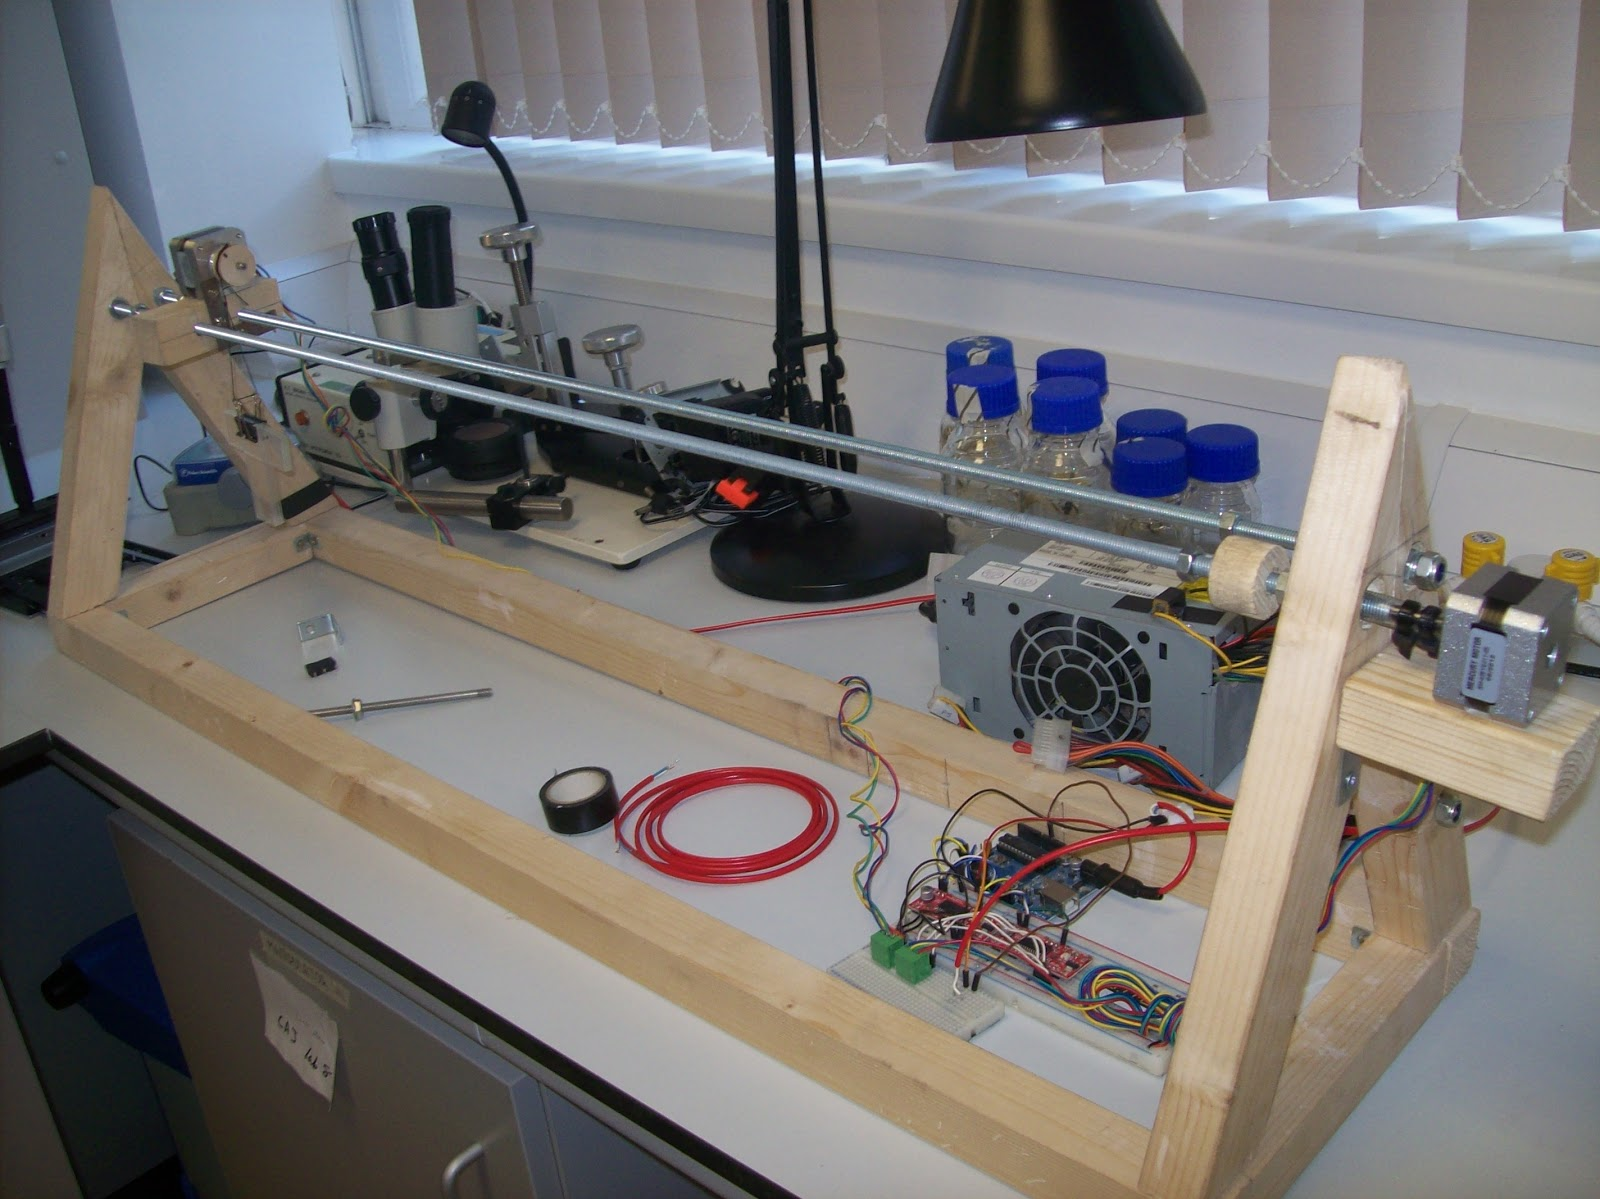 Science Technology Tools And Builds Histology Robot Sneak Peek Electronics Projects For Dummies A Peak Few Quick Pictures Of An Almost Finished Project Platform Automating With One Turning Rail Stationary The